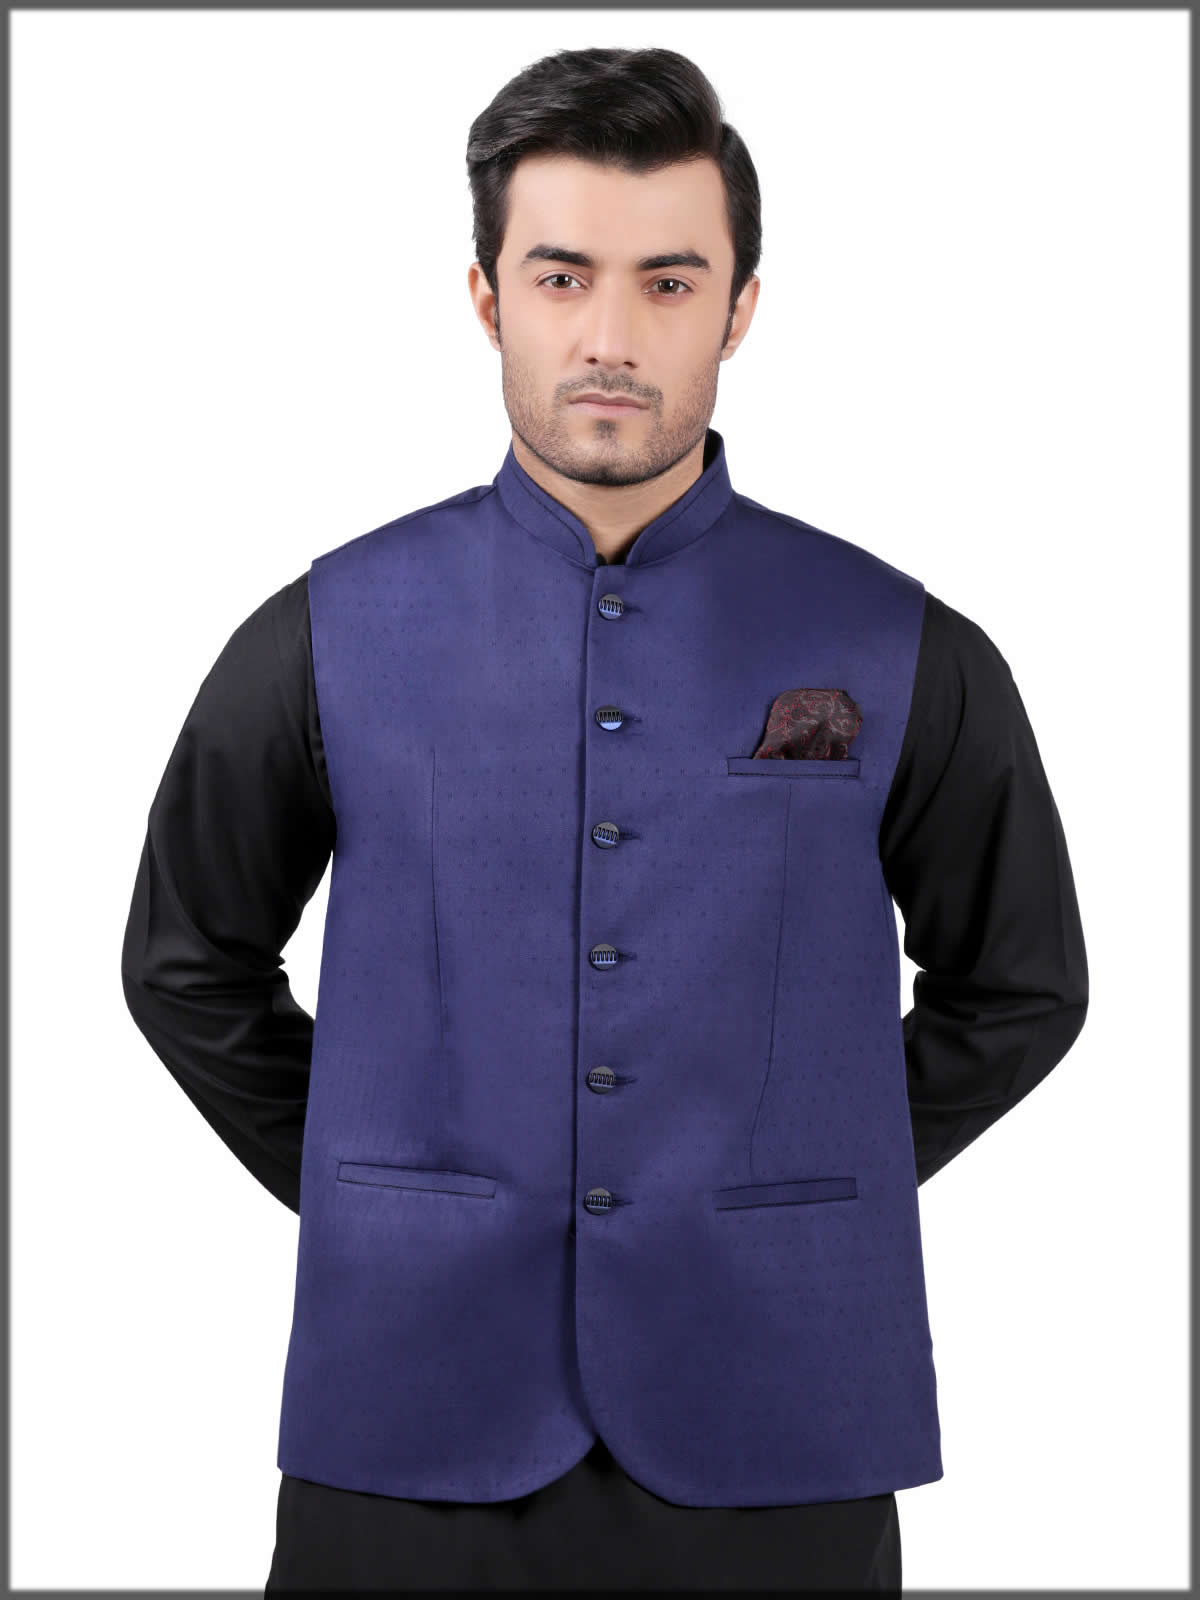 new classy wasitcoat collection for men